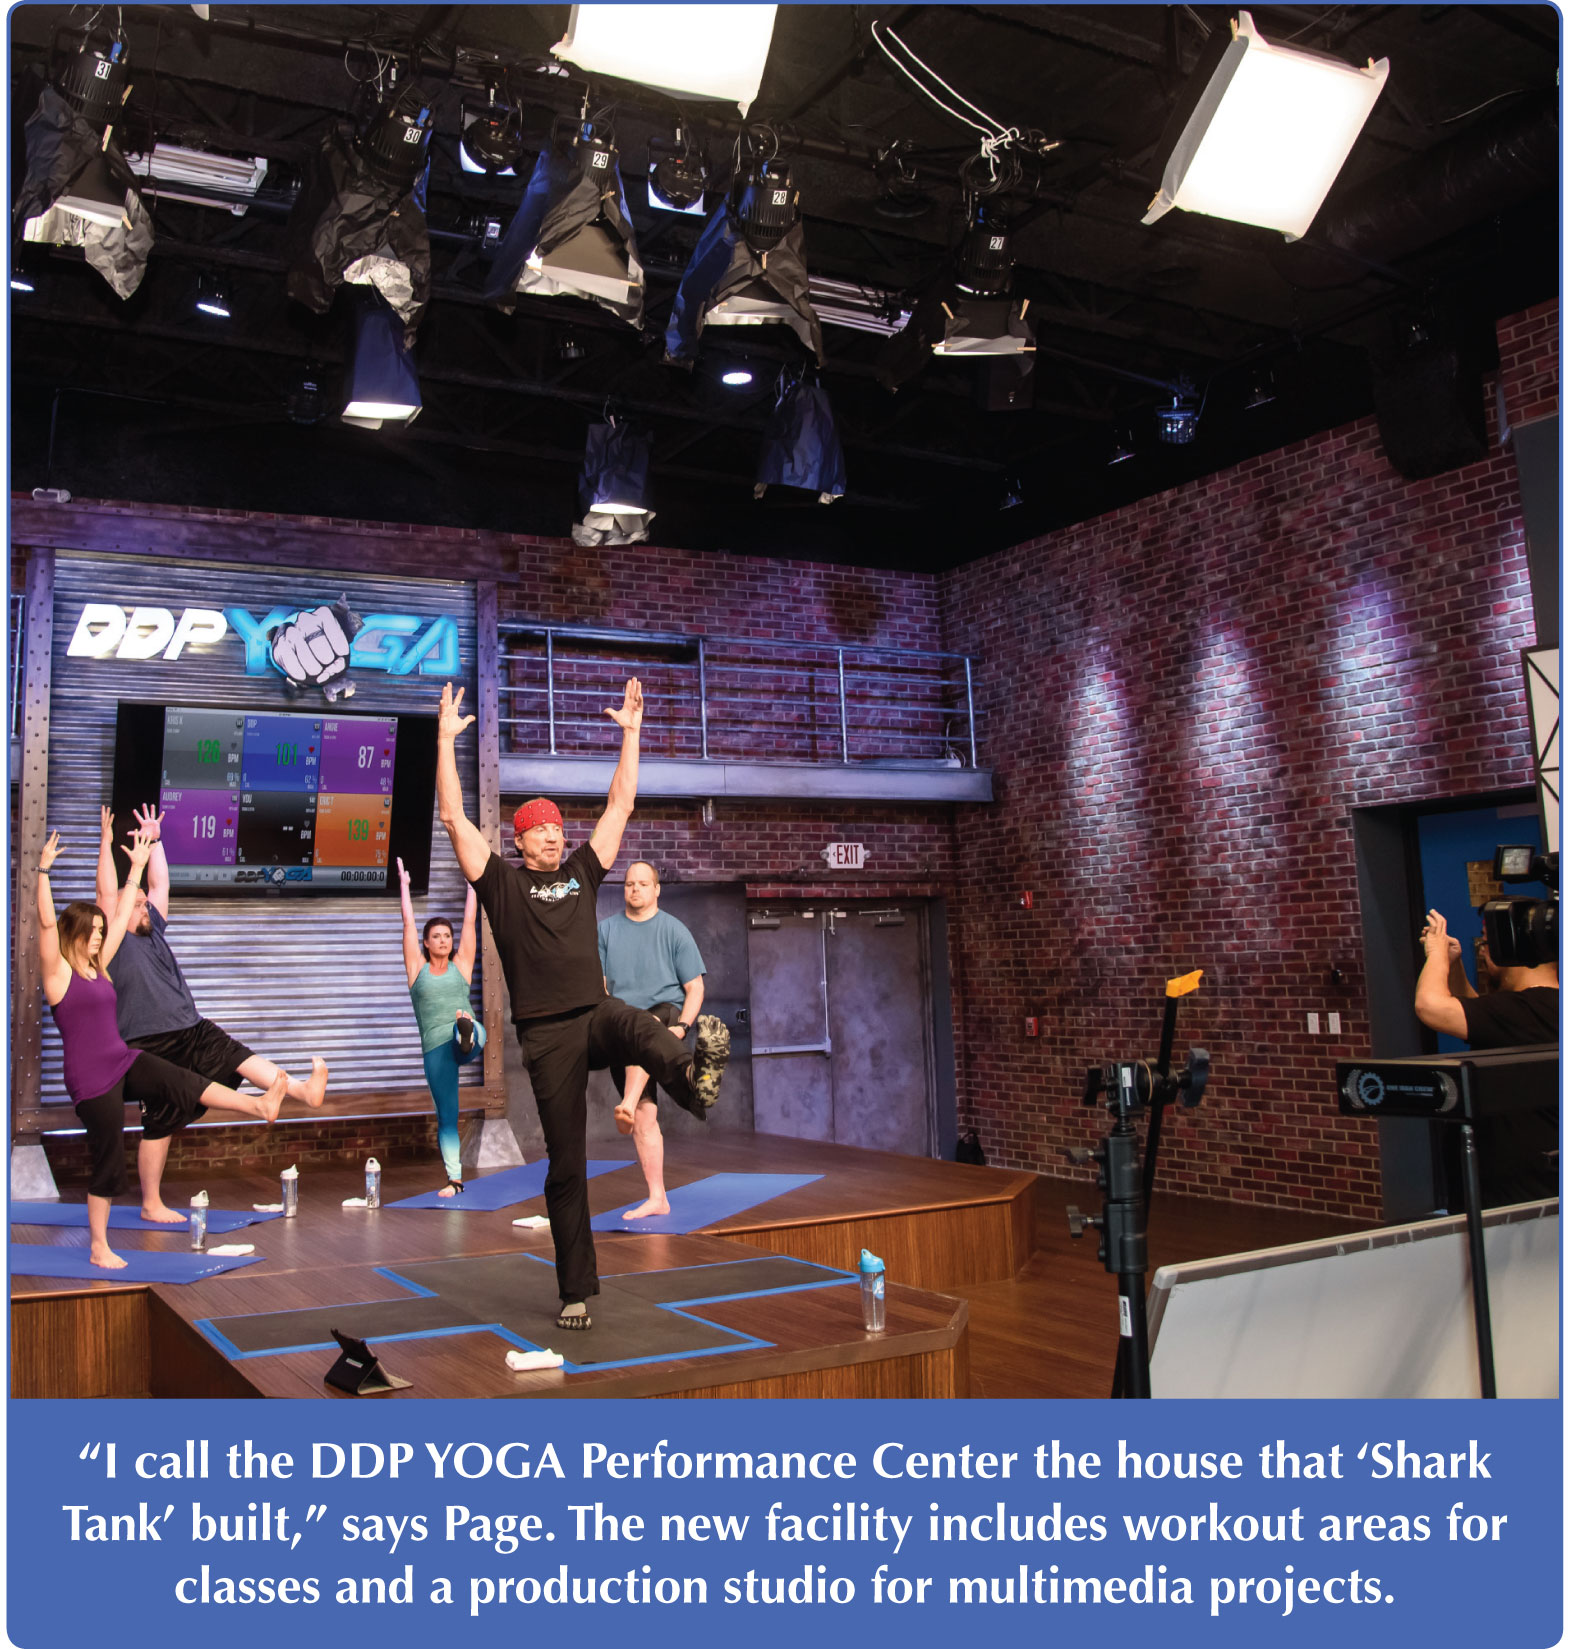 DDP Yoga performance center